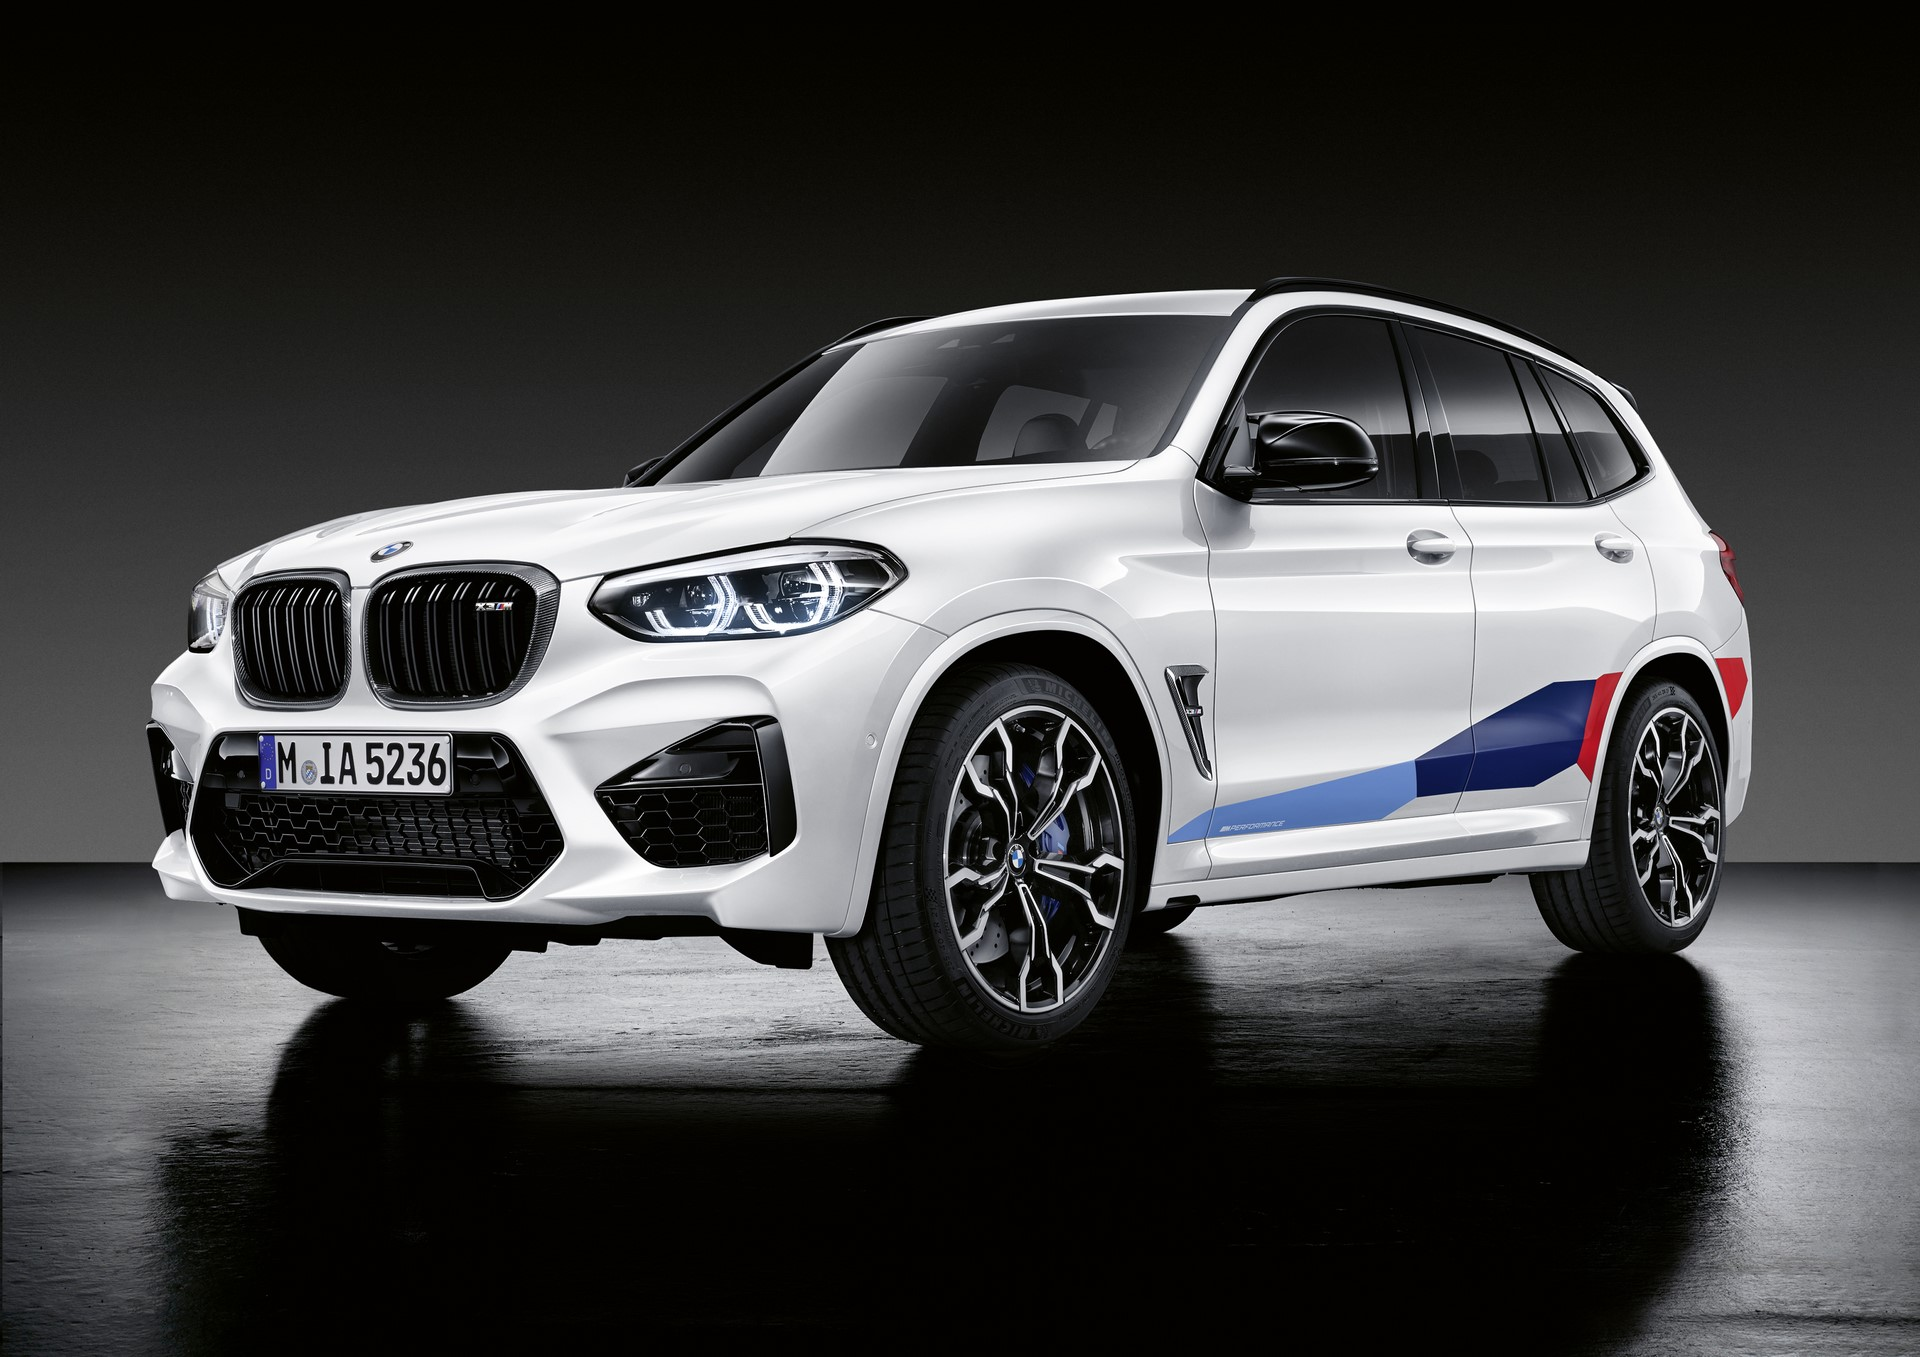 BMW-X3-M-and-BMW-X4-M-M-Performance-Parts-1